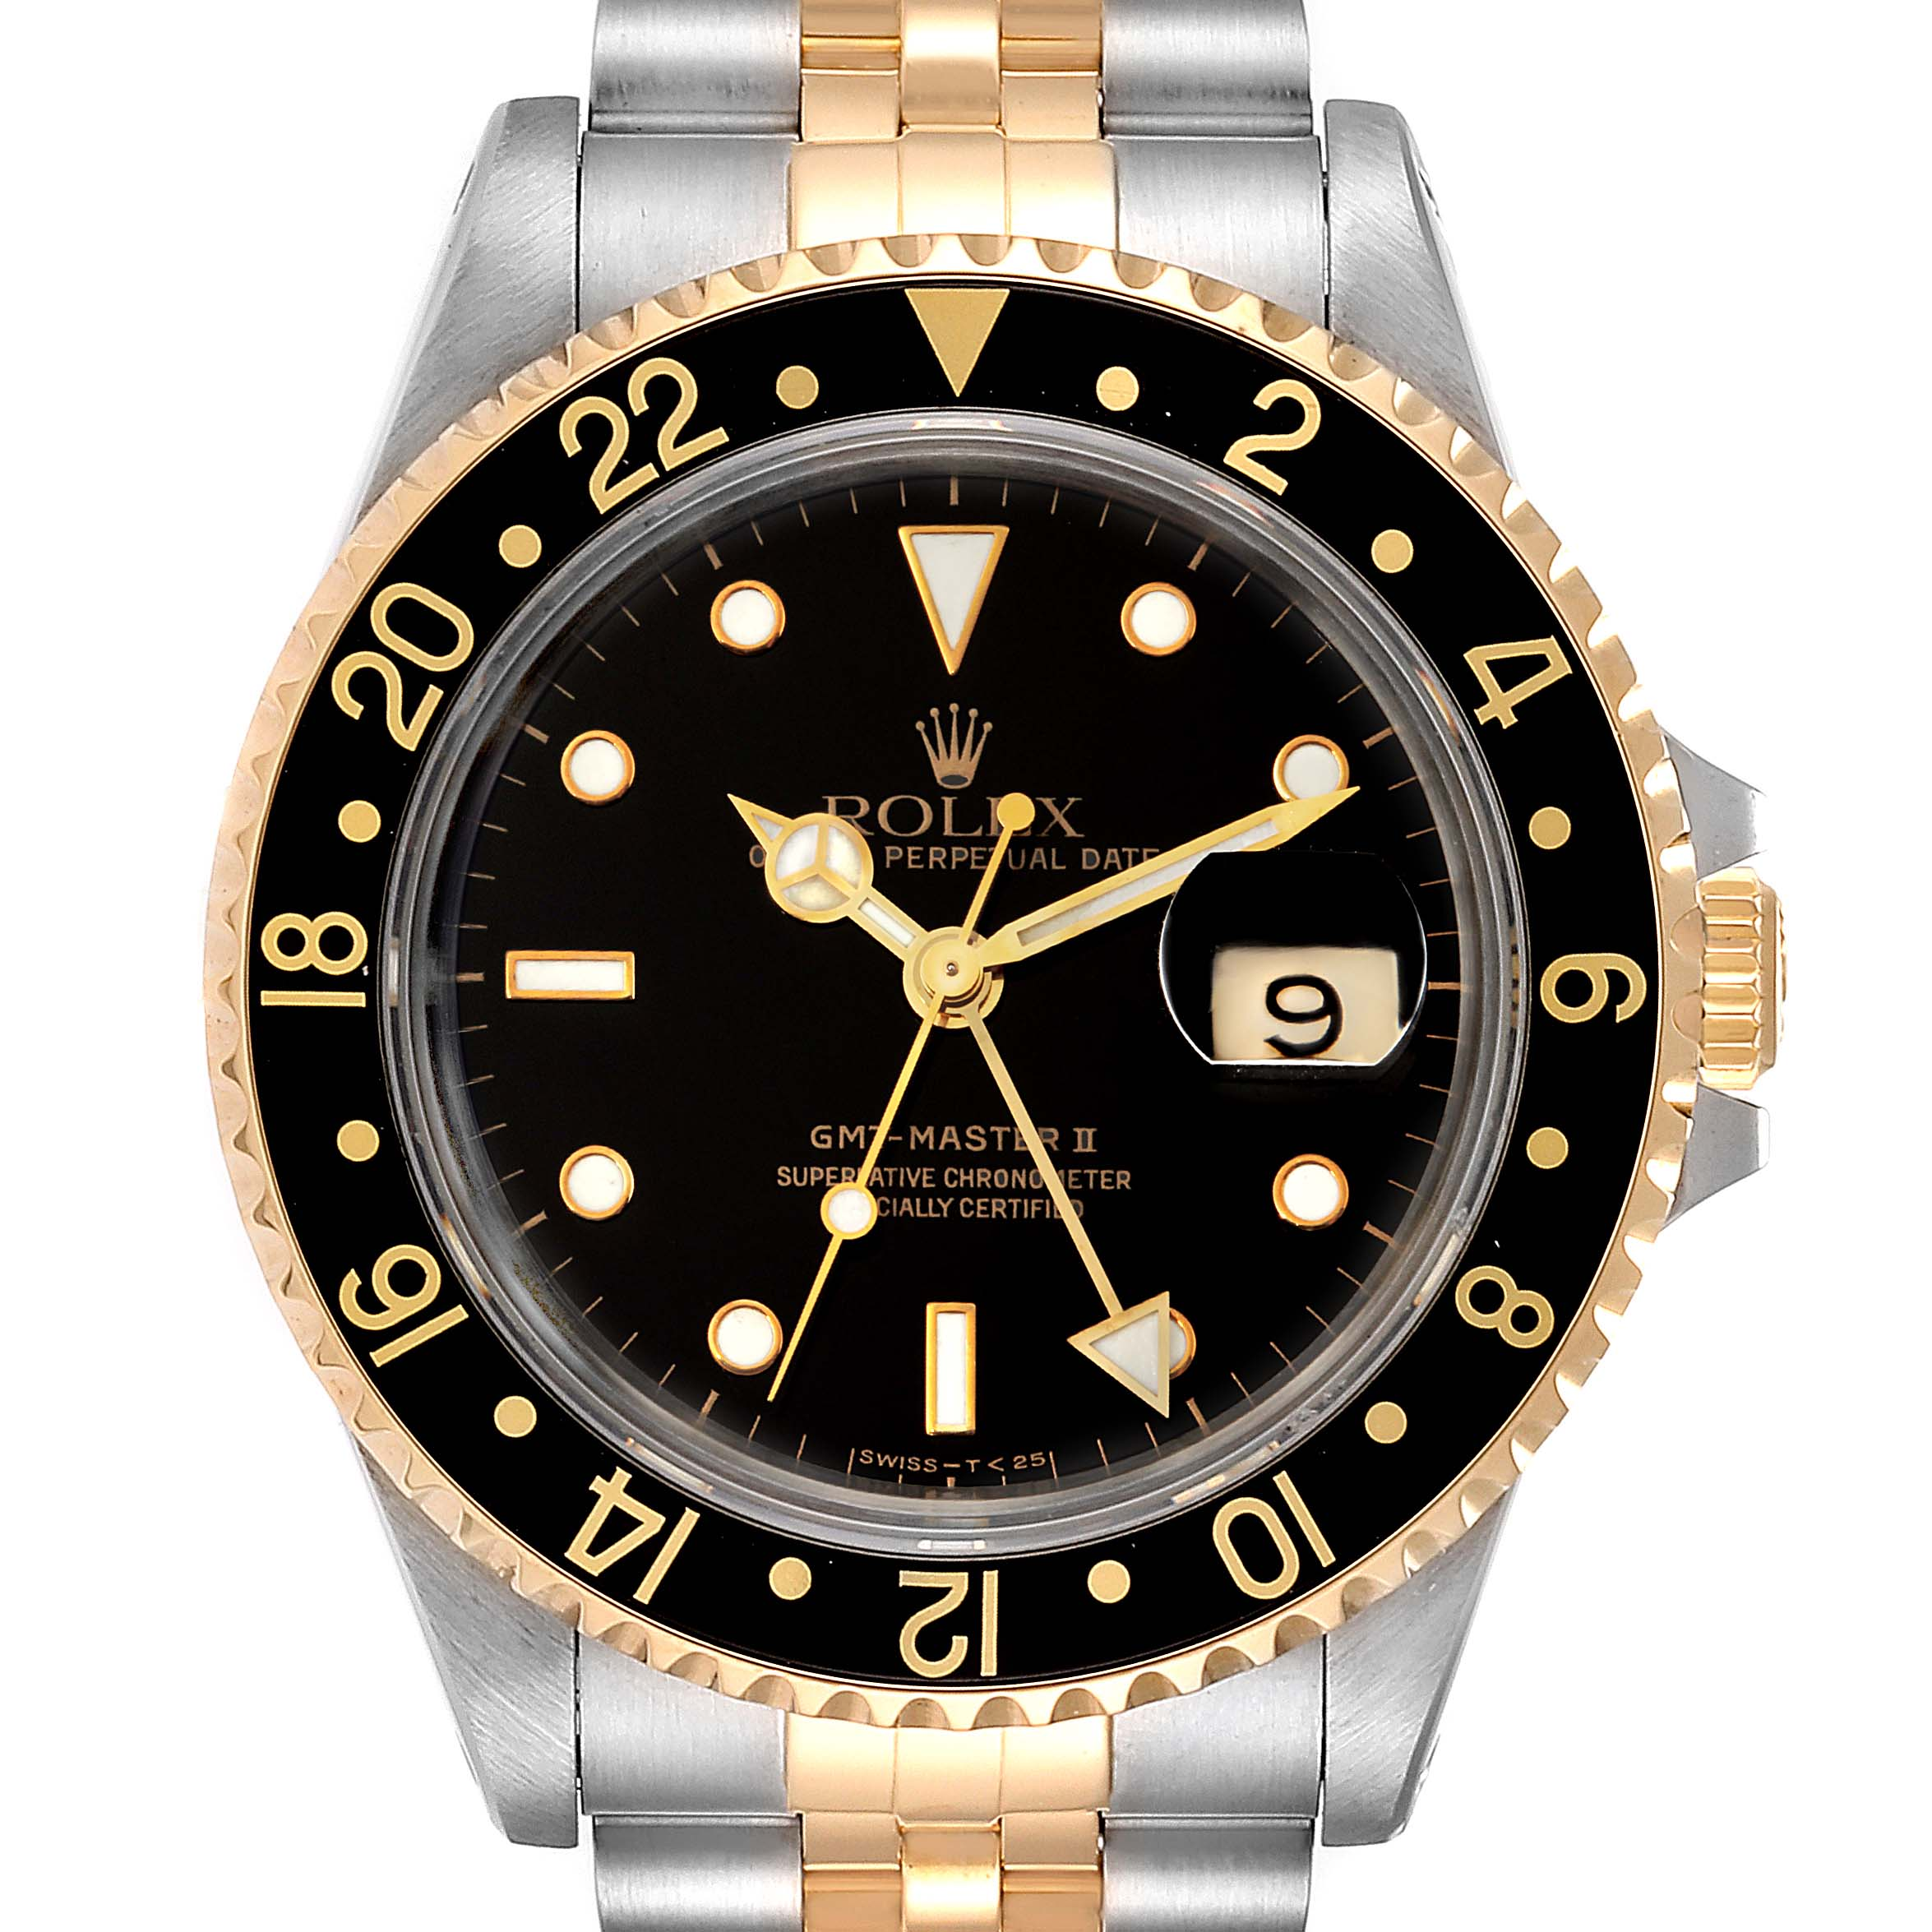 Photo of Rolex GMT Master II Yellow Gold Steel Jubilee Bracelet Mens Watch 16713 PARTIAL PAYMENT